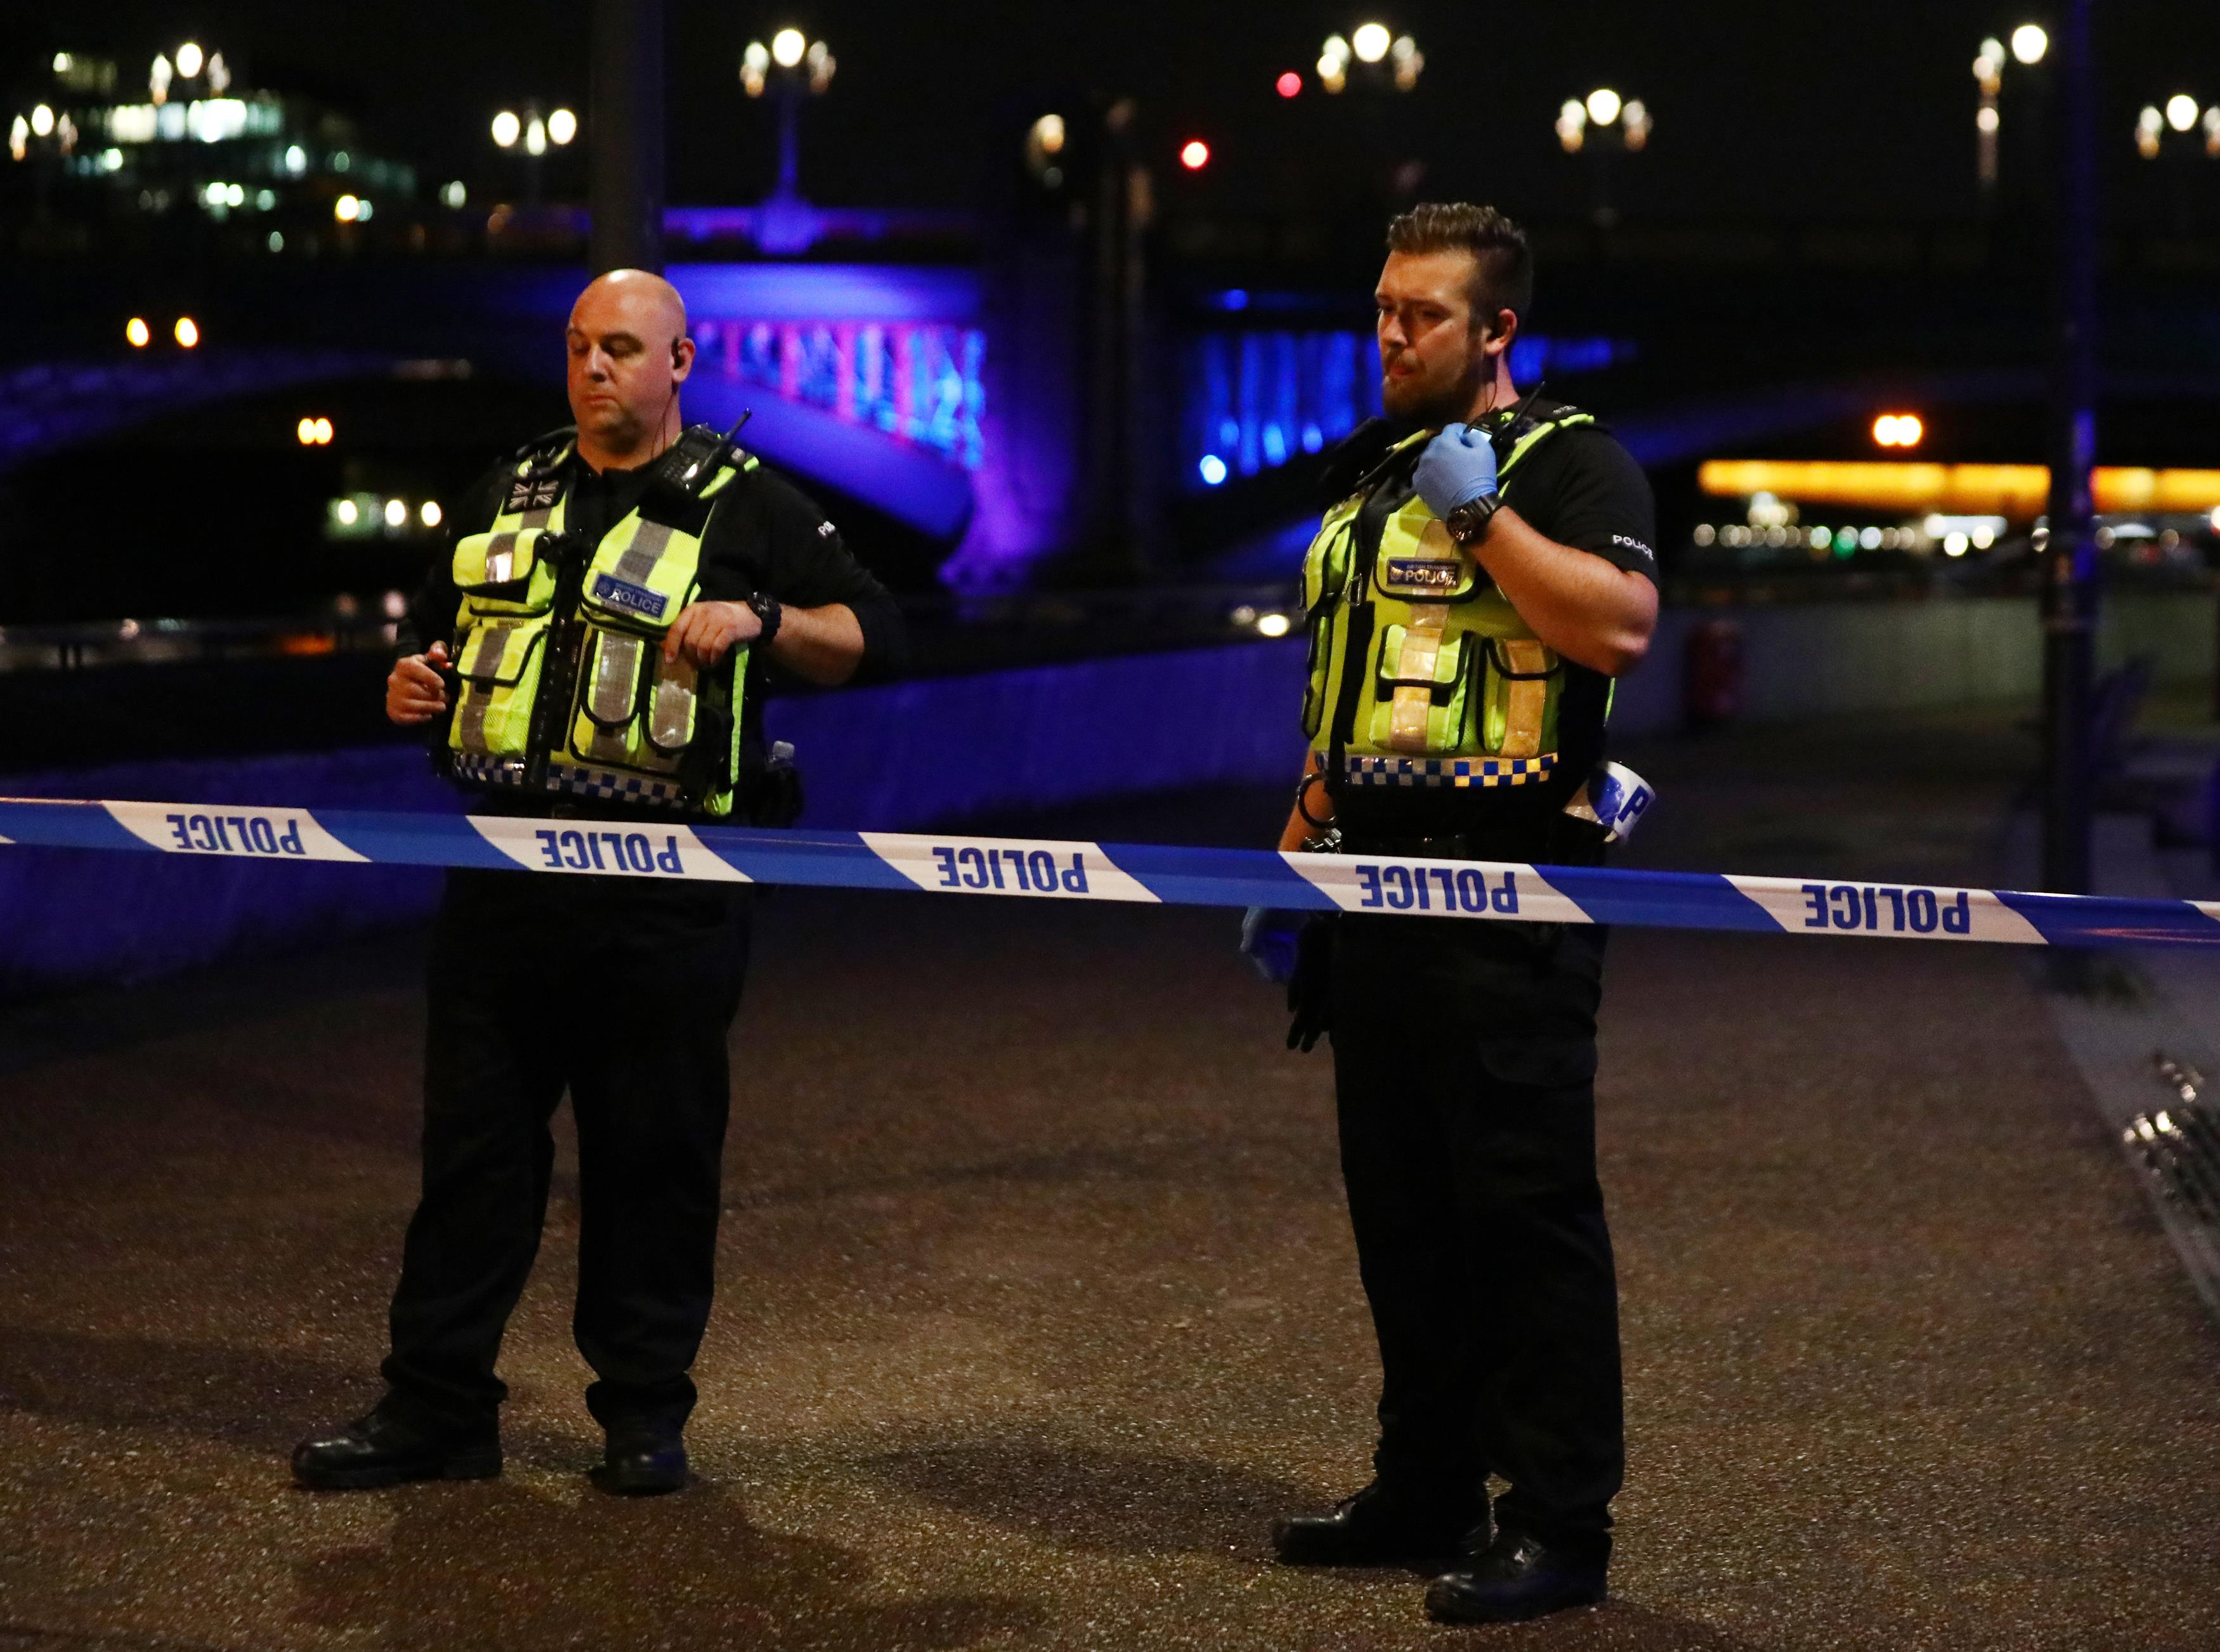 Police officers guard a cordon after an incident near London Bridge in London, Britain June 4, 2017. REUTERS/Neil Hall